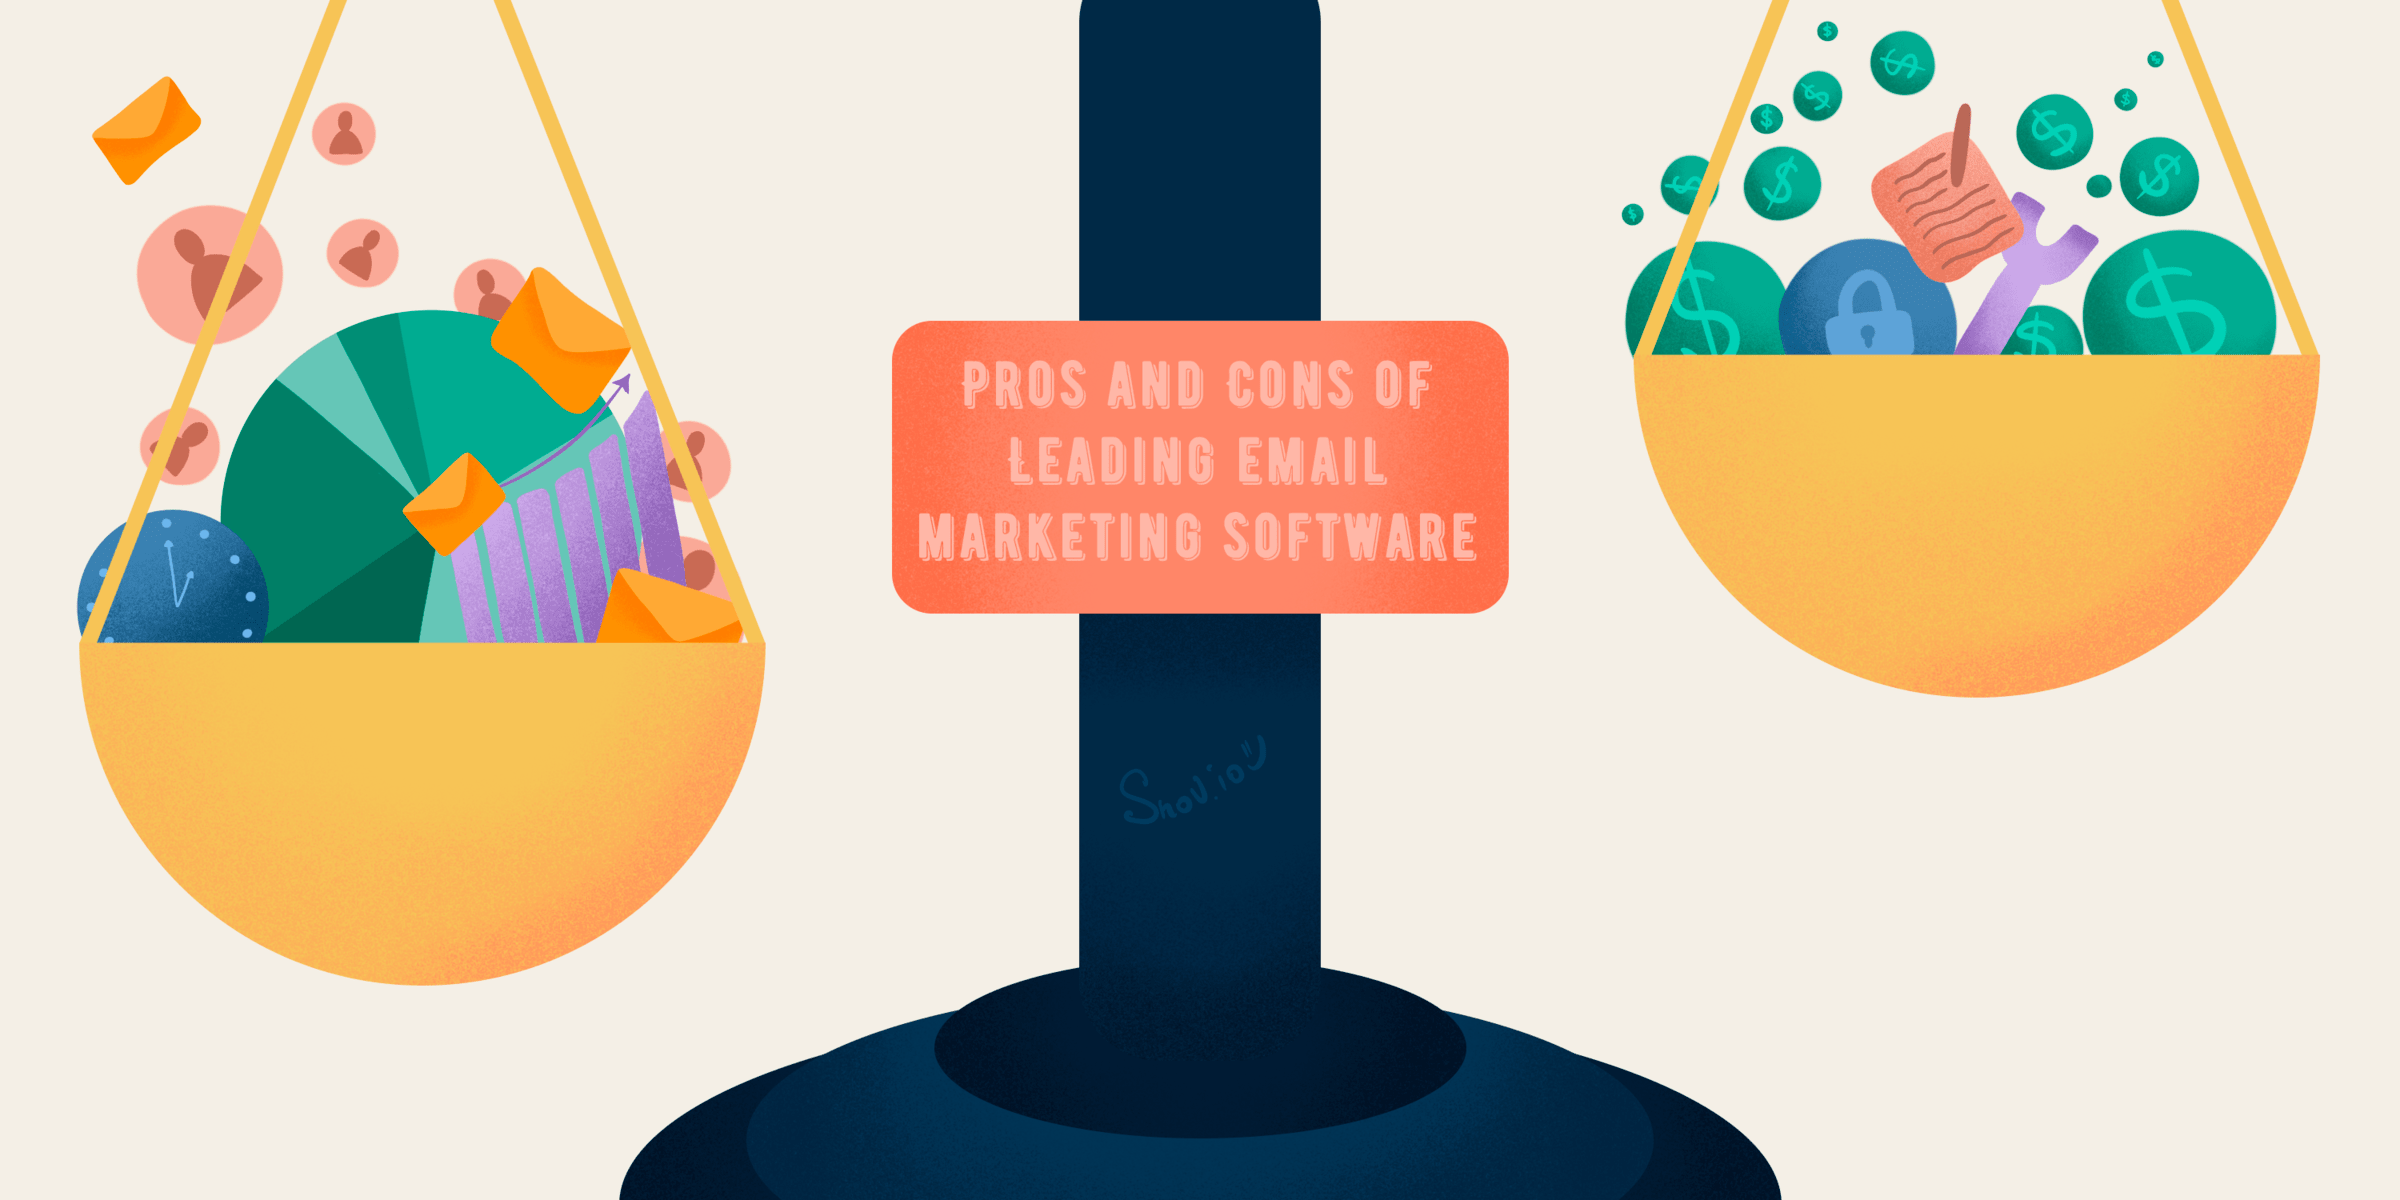 pros and cons of email marketing software